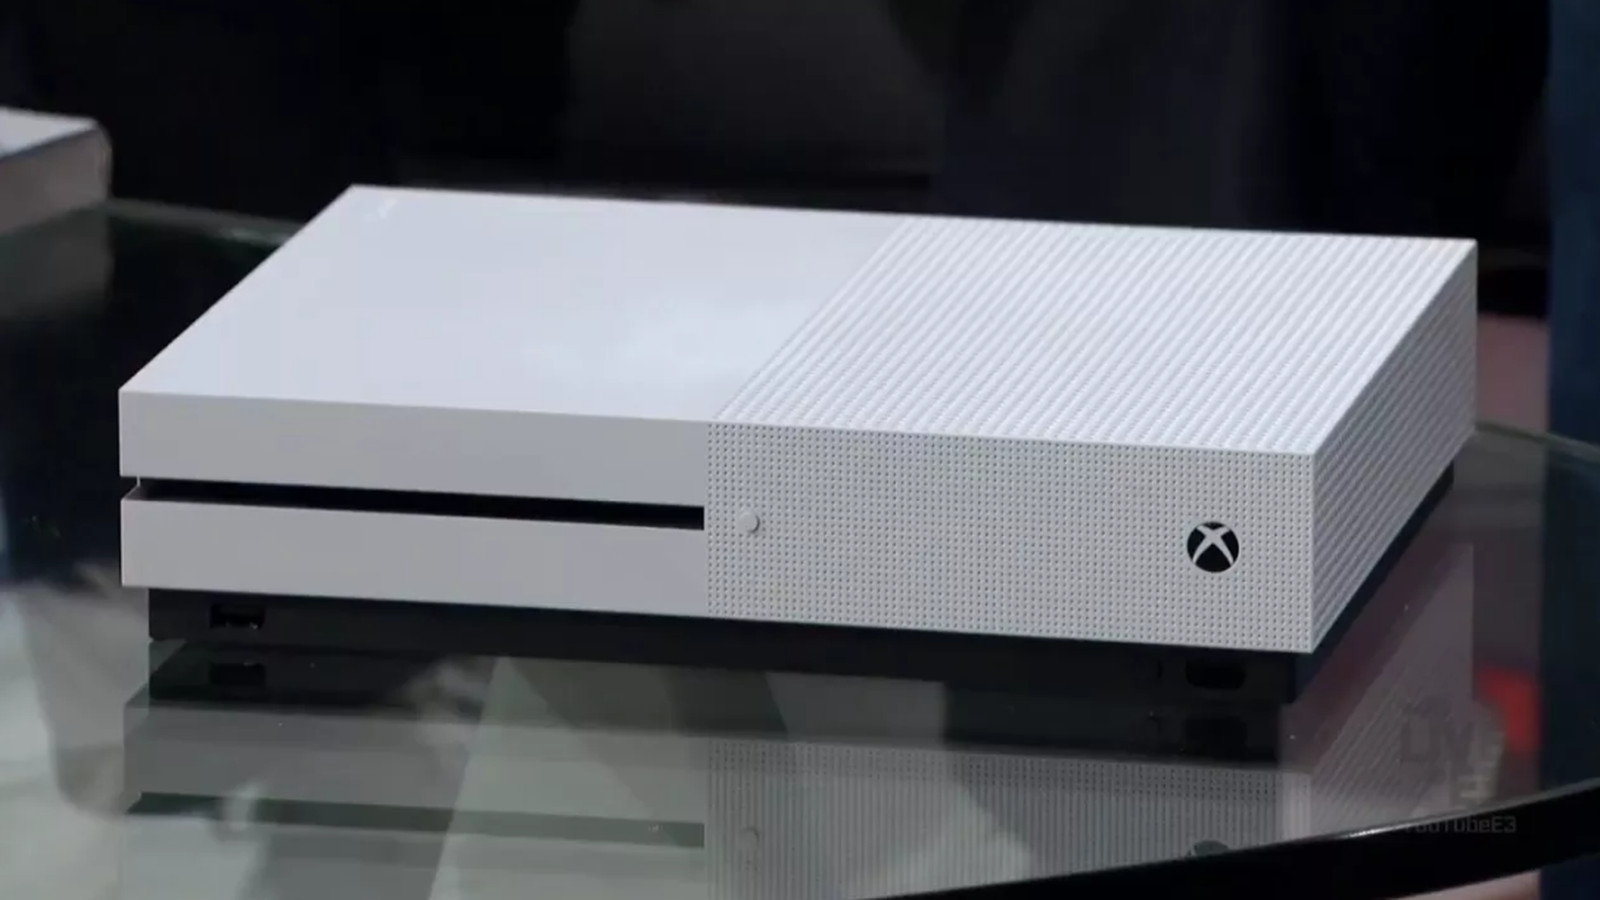 xbox one bind on location xbox 360 screen   elsavadorla xbox one manual disk eject xbox one manual disc eject tool